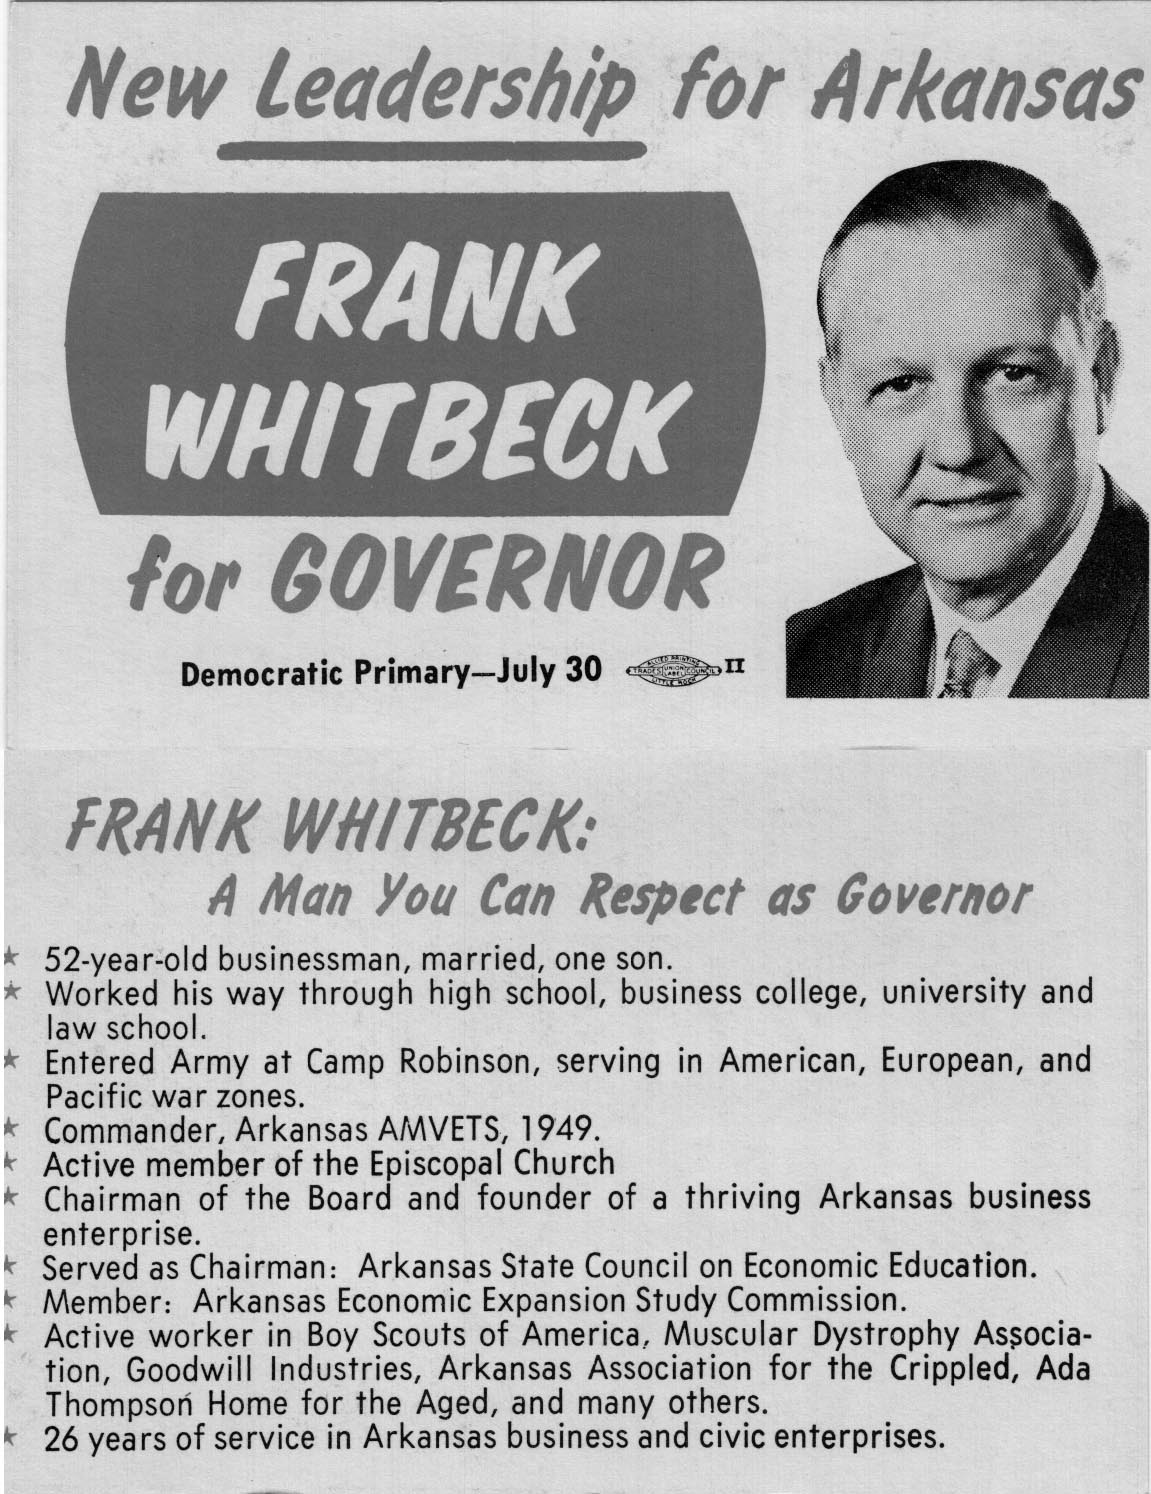 Image of Card with photo of Frank Whitbeck